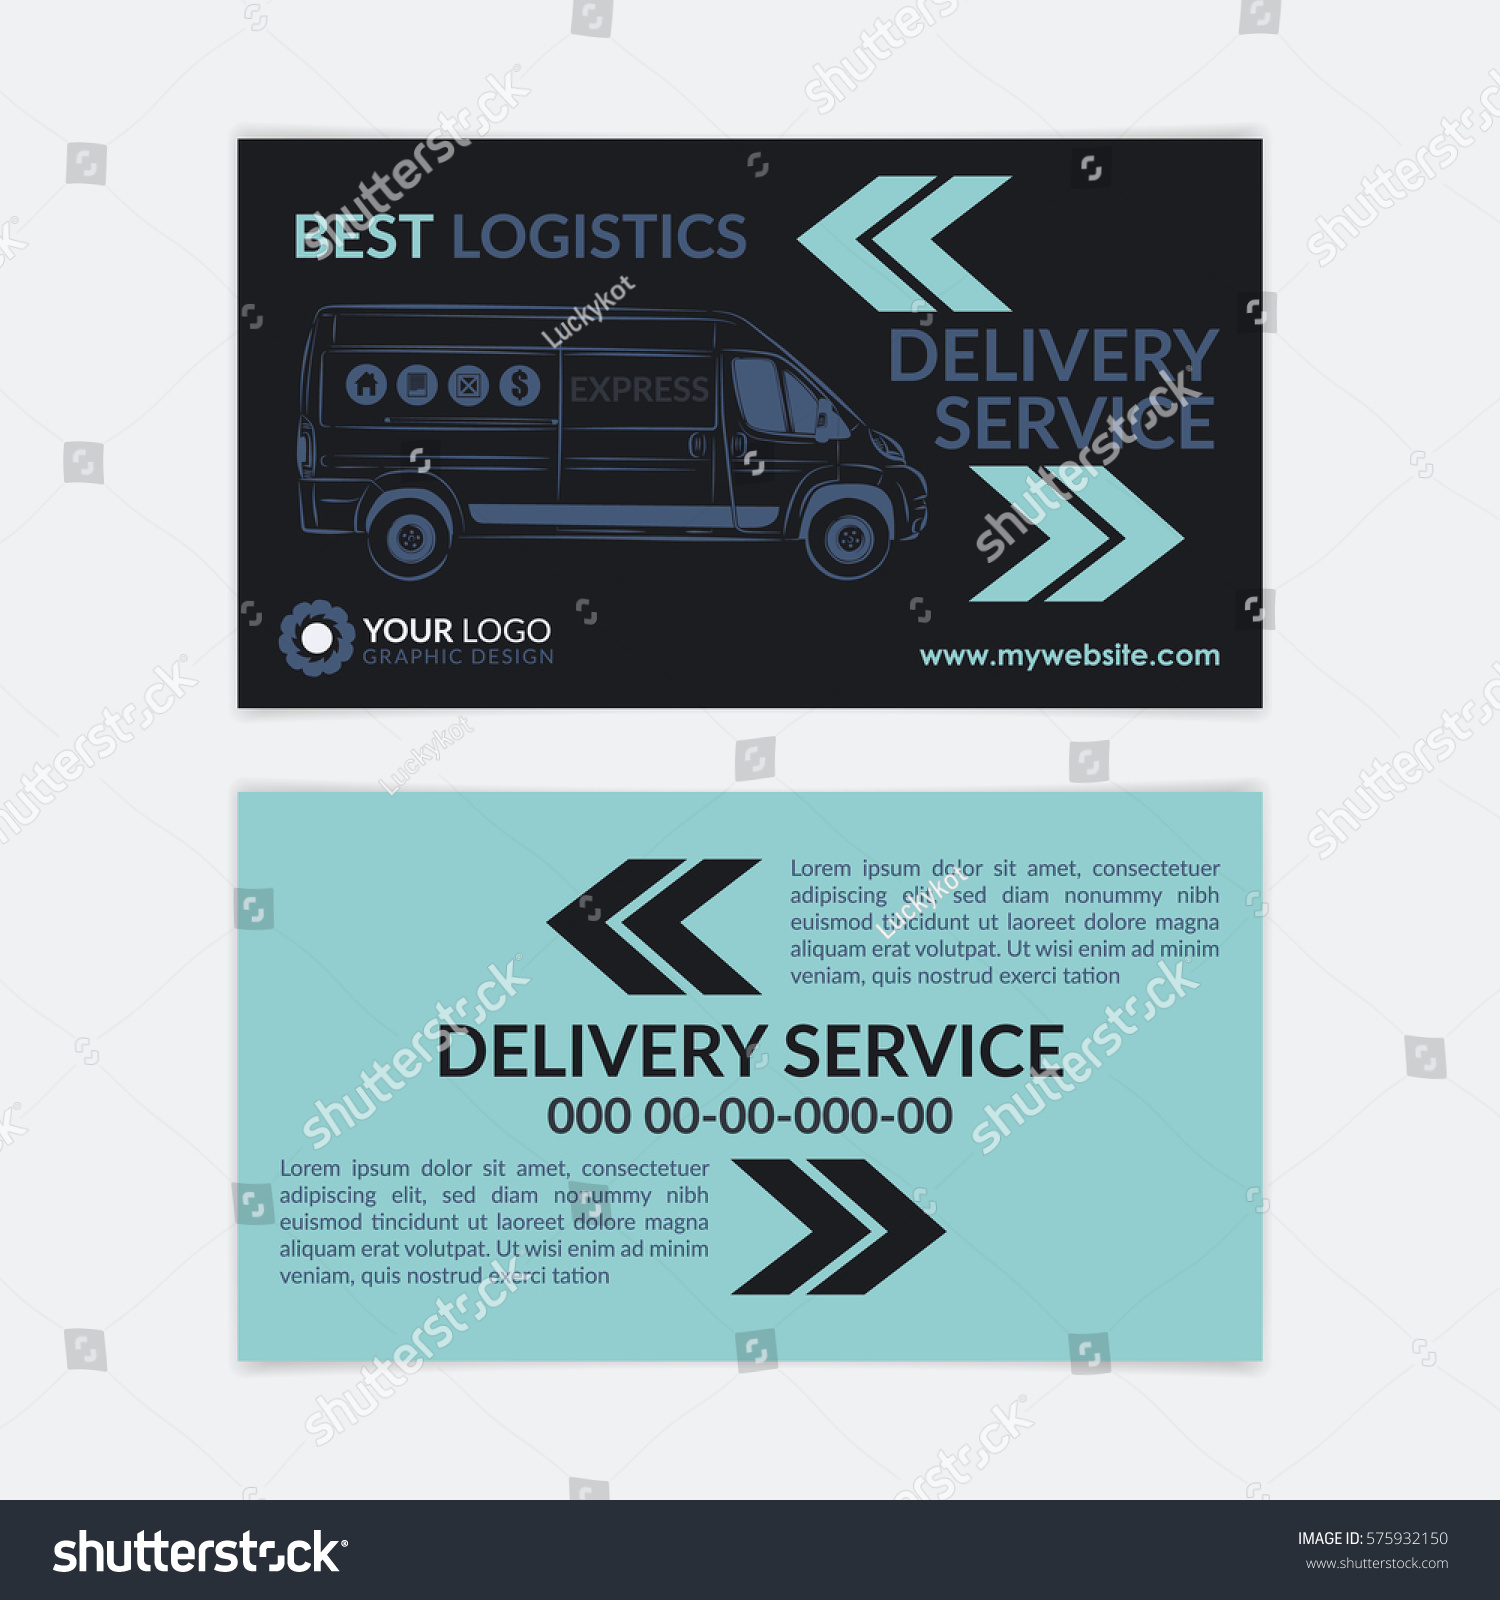 2 Sided Business Card Delivery Service Stock Vector 575932150 ...